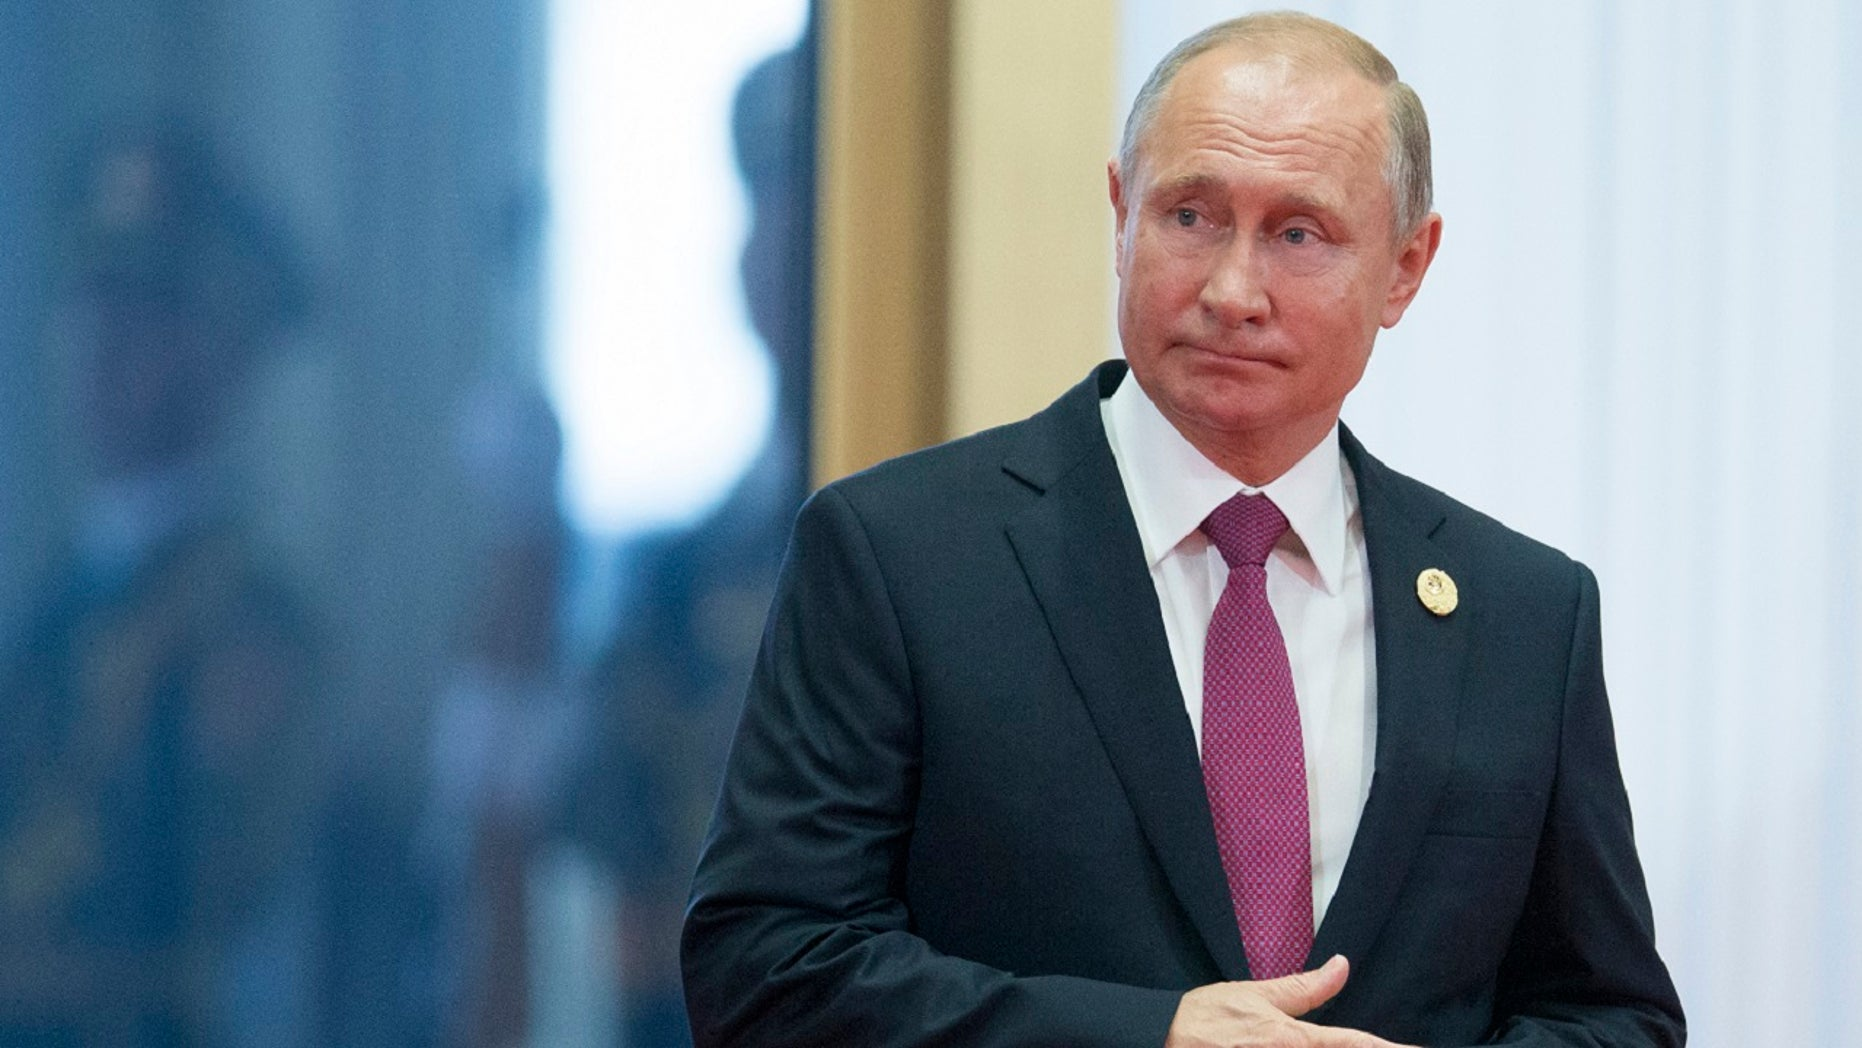 Russian President Vladimir Putin says he shares President Donald Trump's concerns about a renewed arms race.